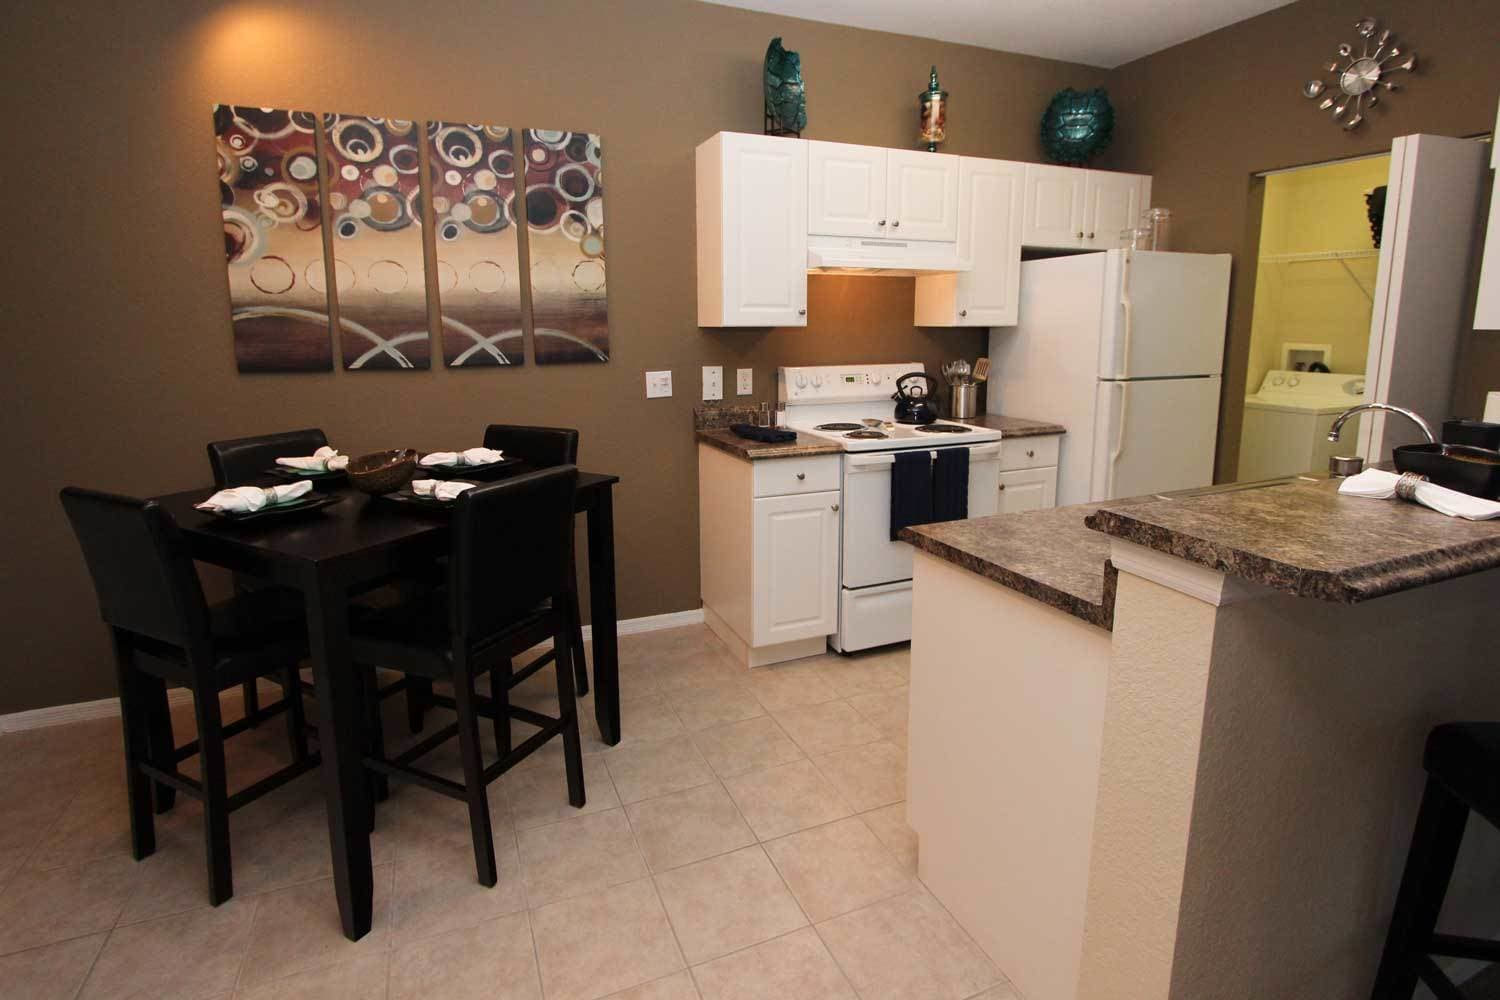 The Benchmark Group apartment kitchen